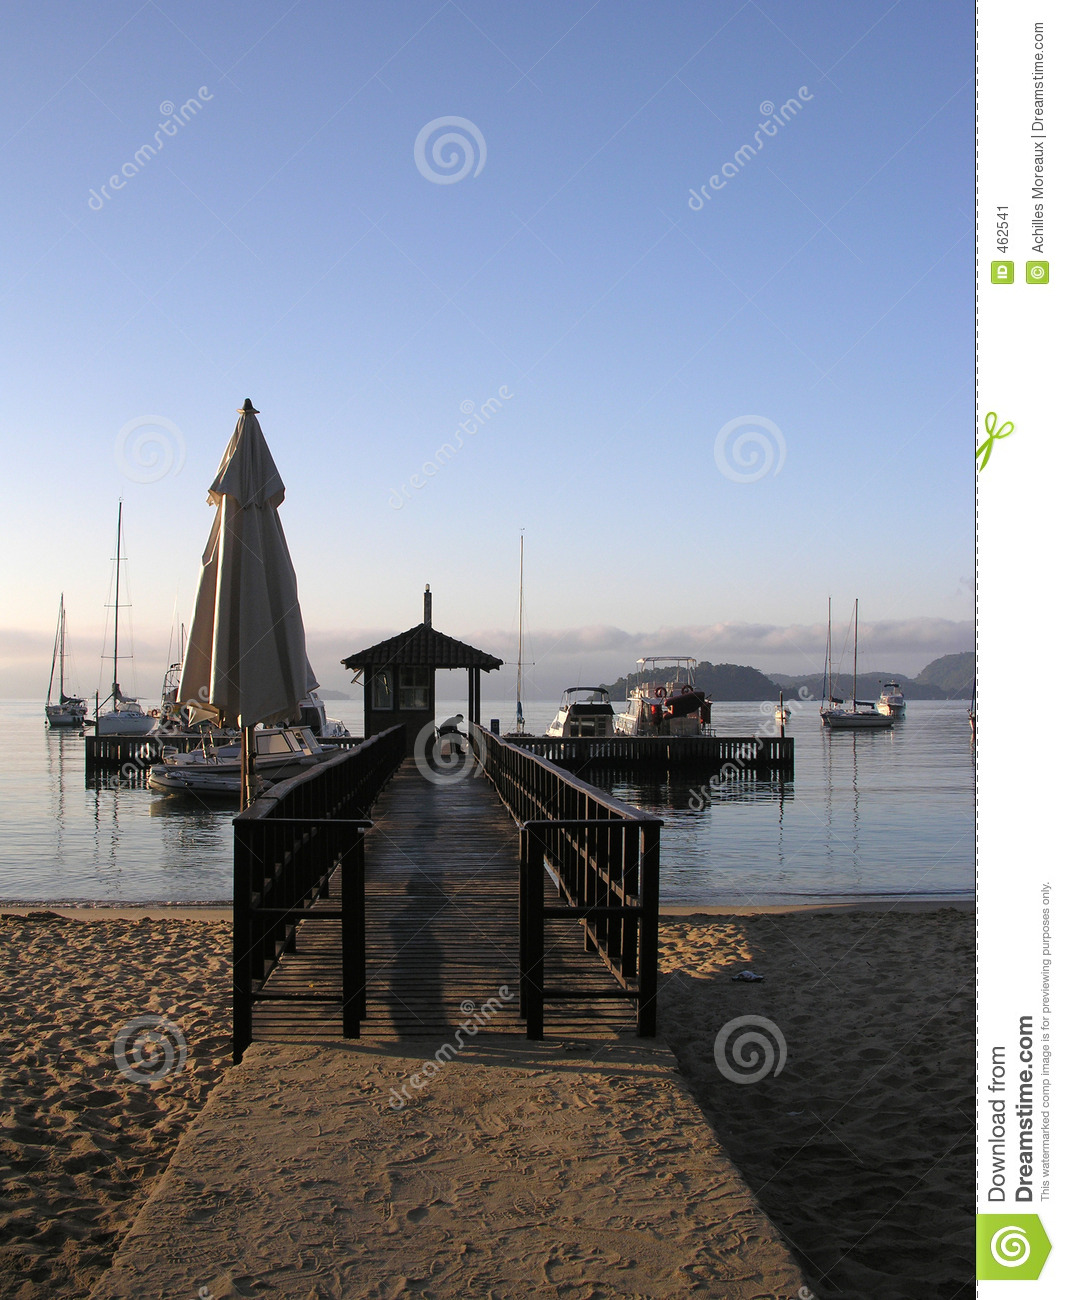 Download Pier in stock image. Image of peaceful, exotic, outdoors - 462541